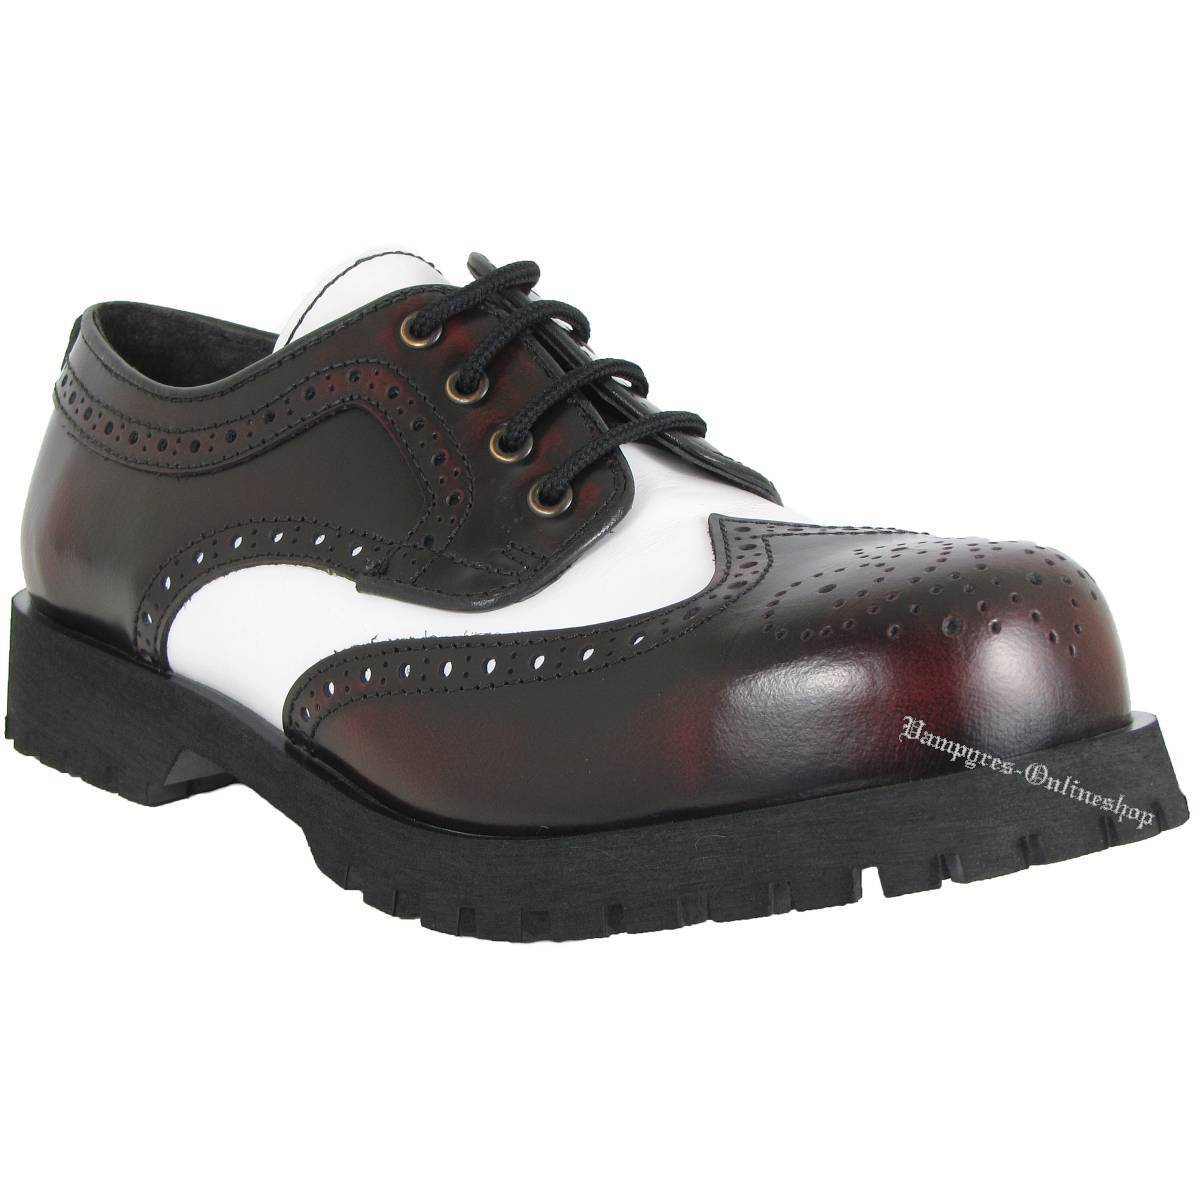 8674a4fa0aded0 Boots Budapester   Braces Schuhe 4-Loch Budapester Boots Burgundy Rub Off  Weiß Rangers Stahlkappe 0dcd5b